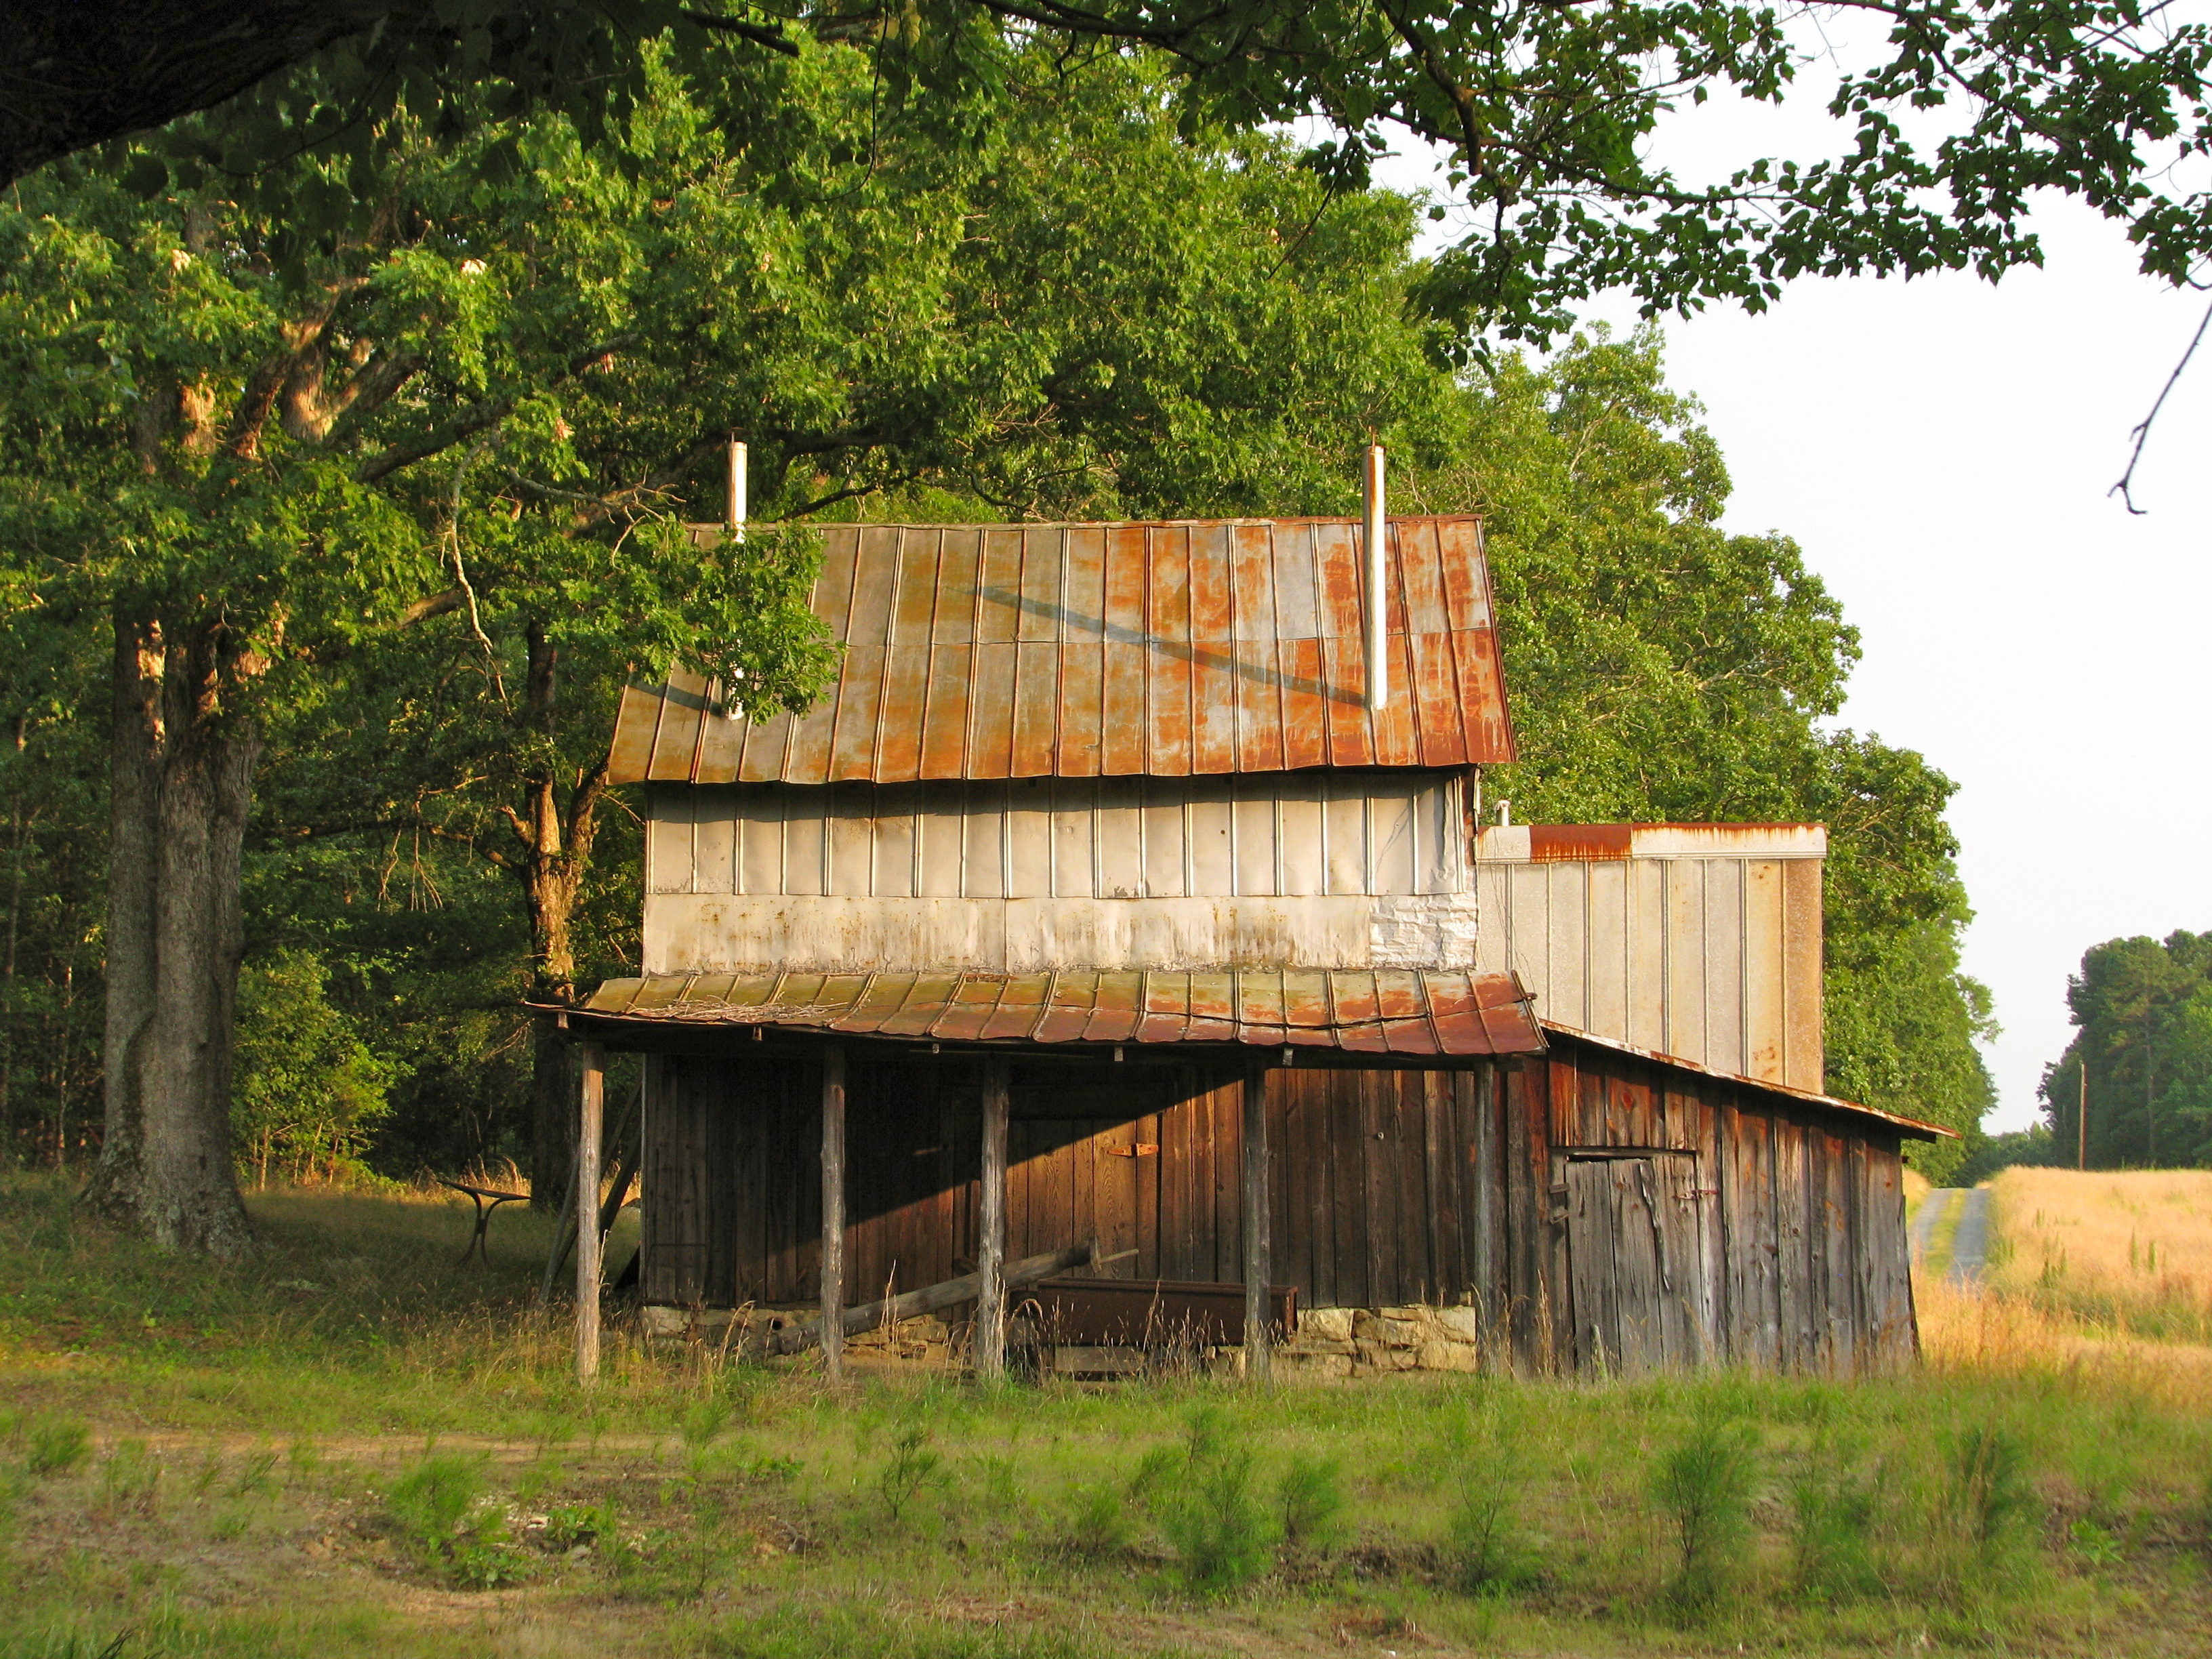 Beautiful Tobacco Barns And A Dilapidated Log Cabin